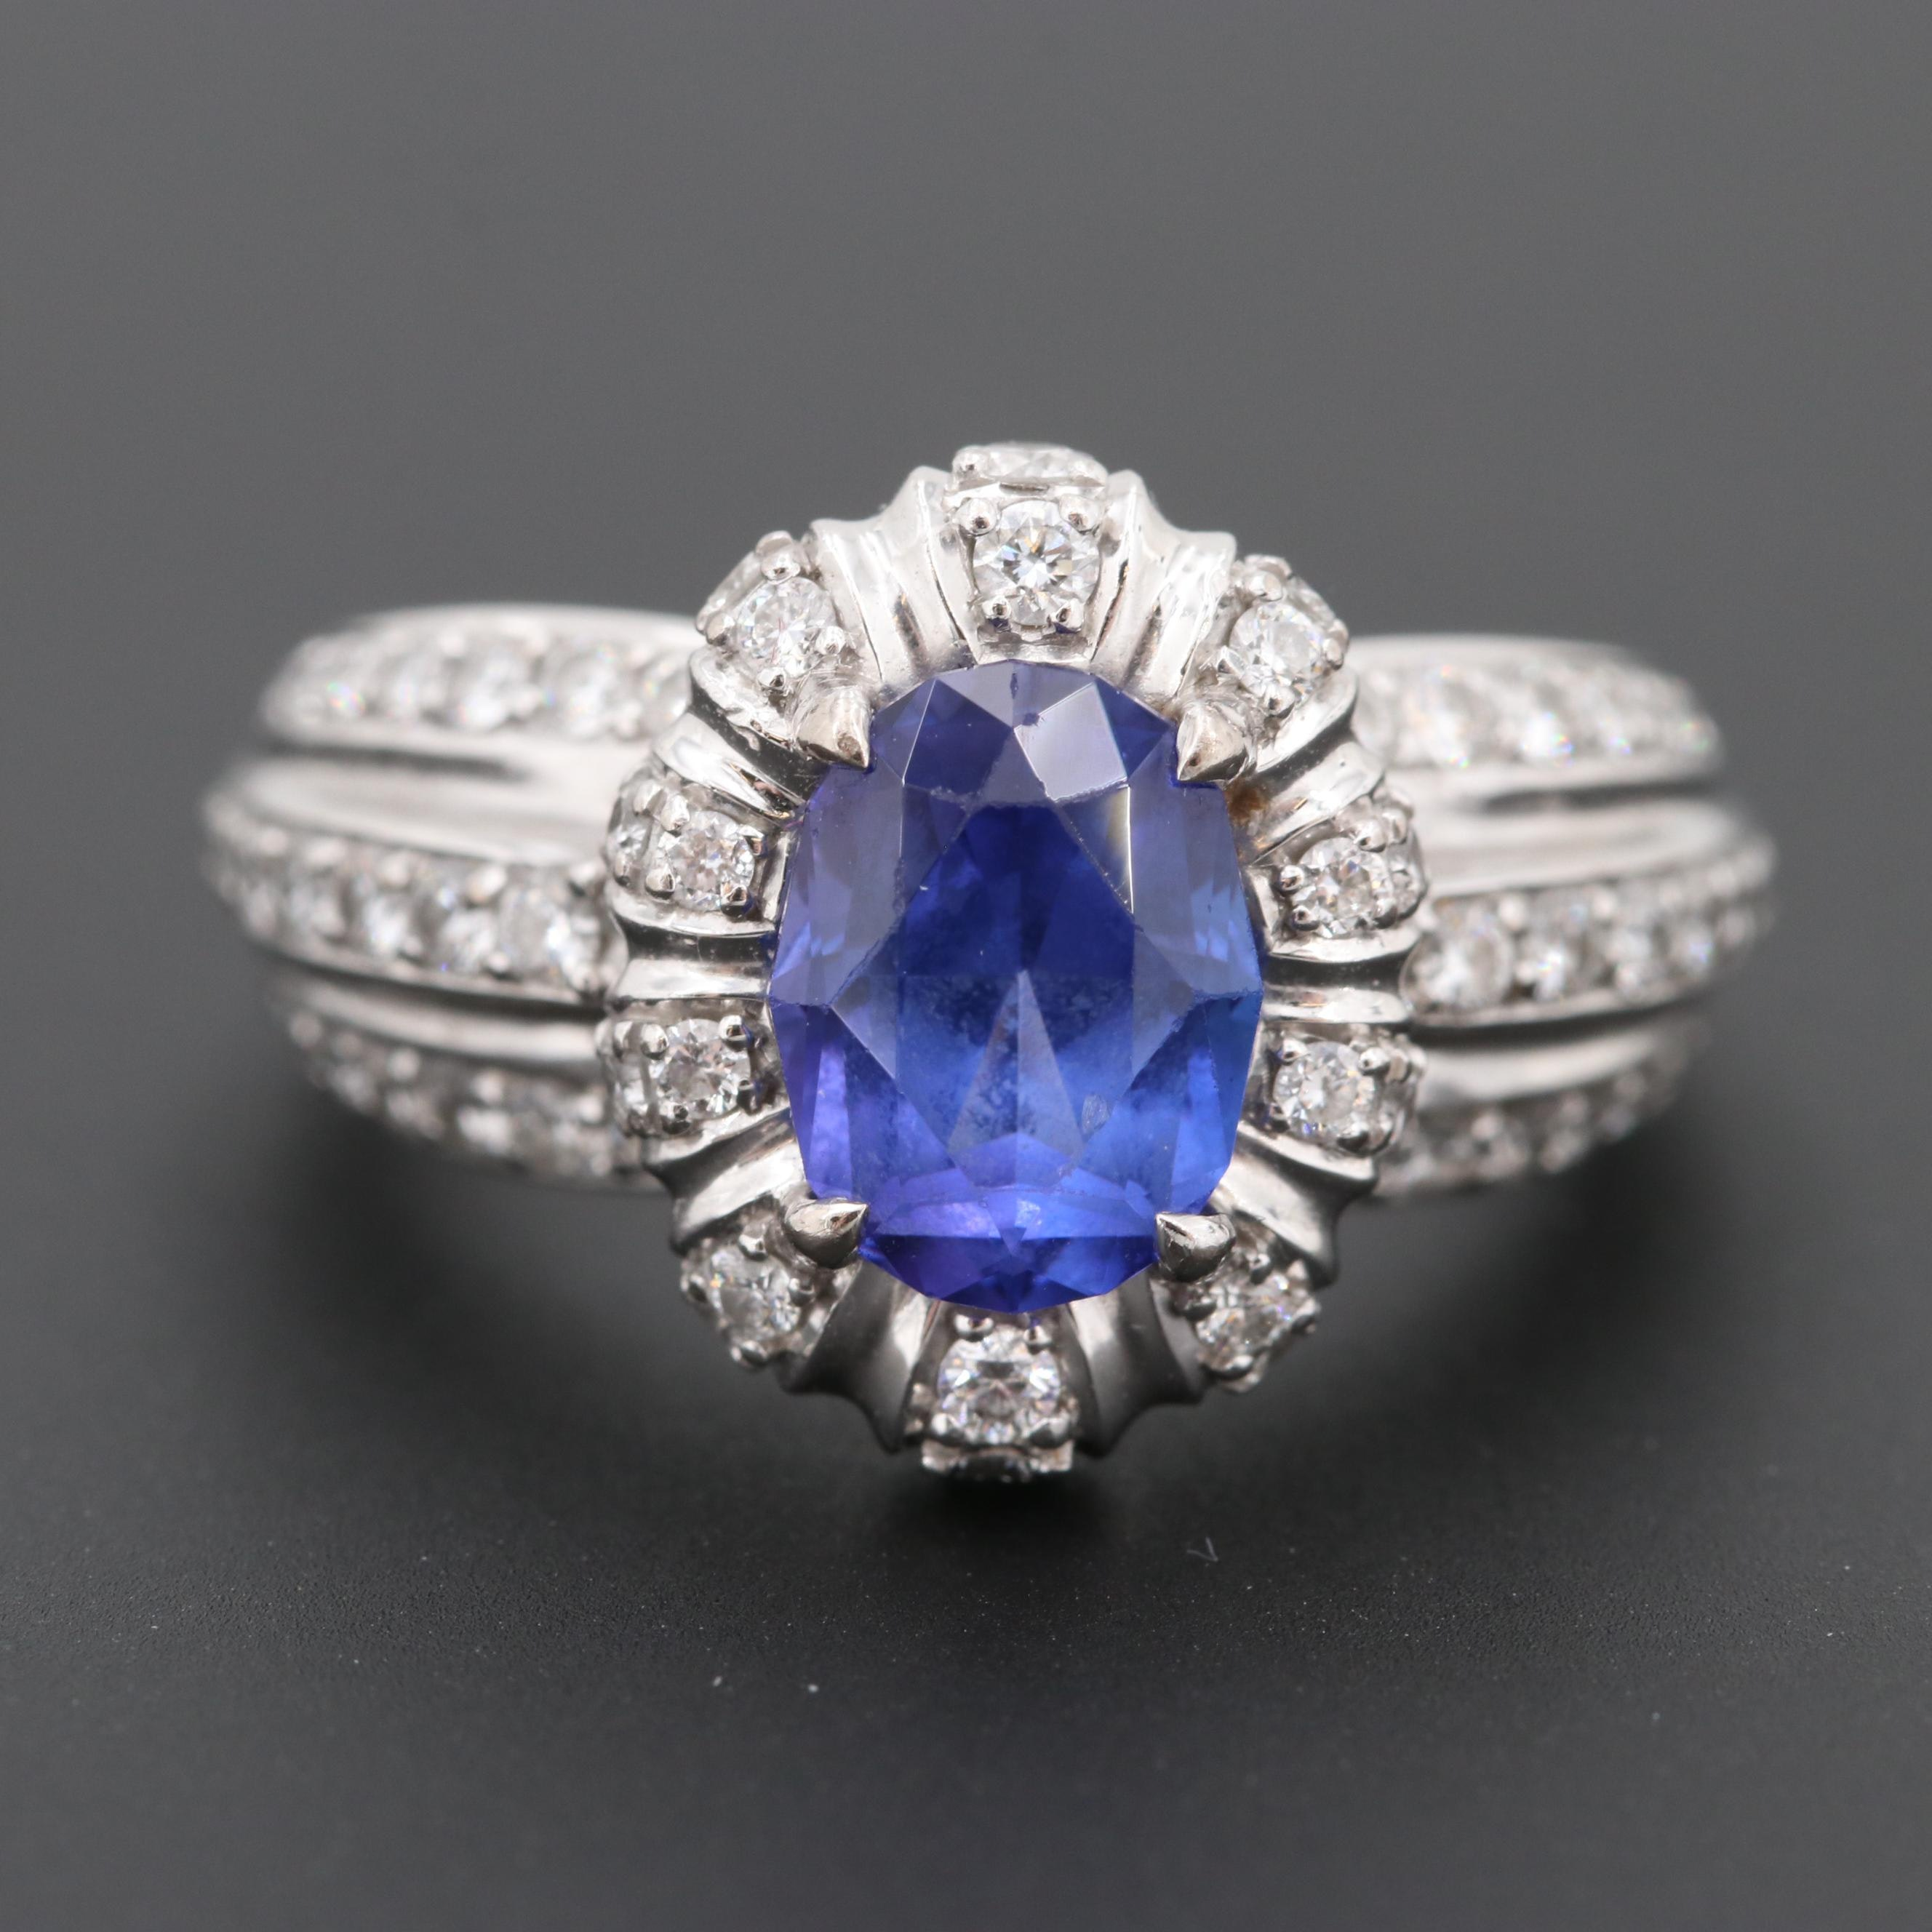 Kat Florence 18K White Gold Tanzanite and Diamond Ring with Modified Shank